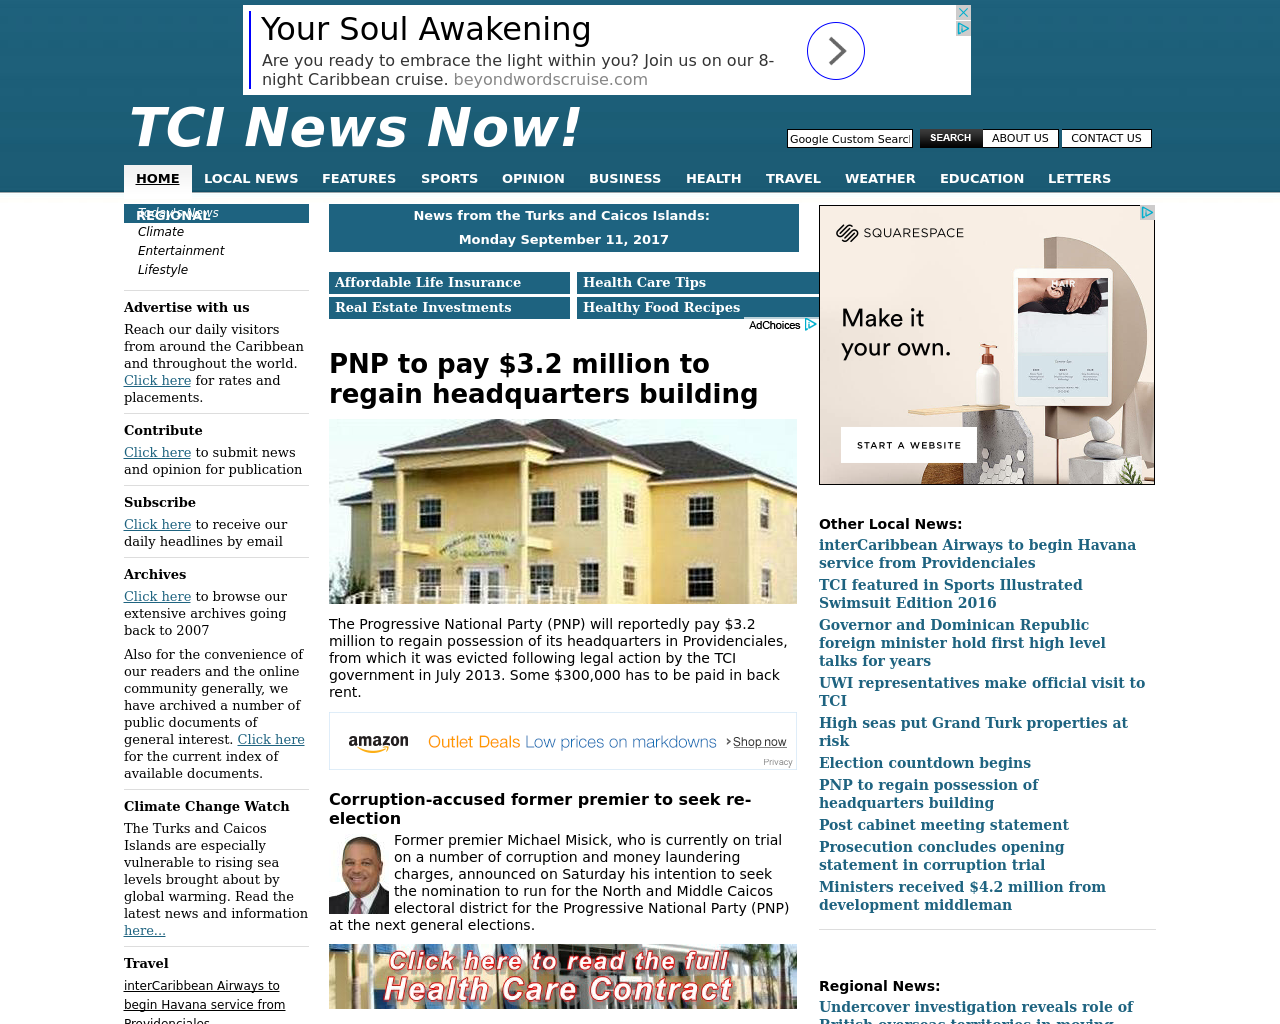 TCI-News-Now-Advertising-Reviews-Pricing